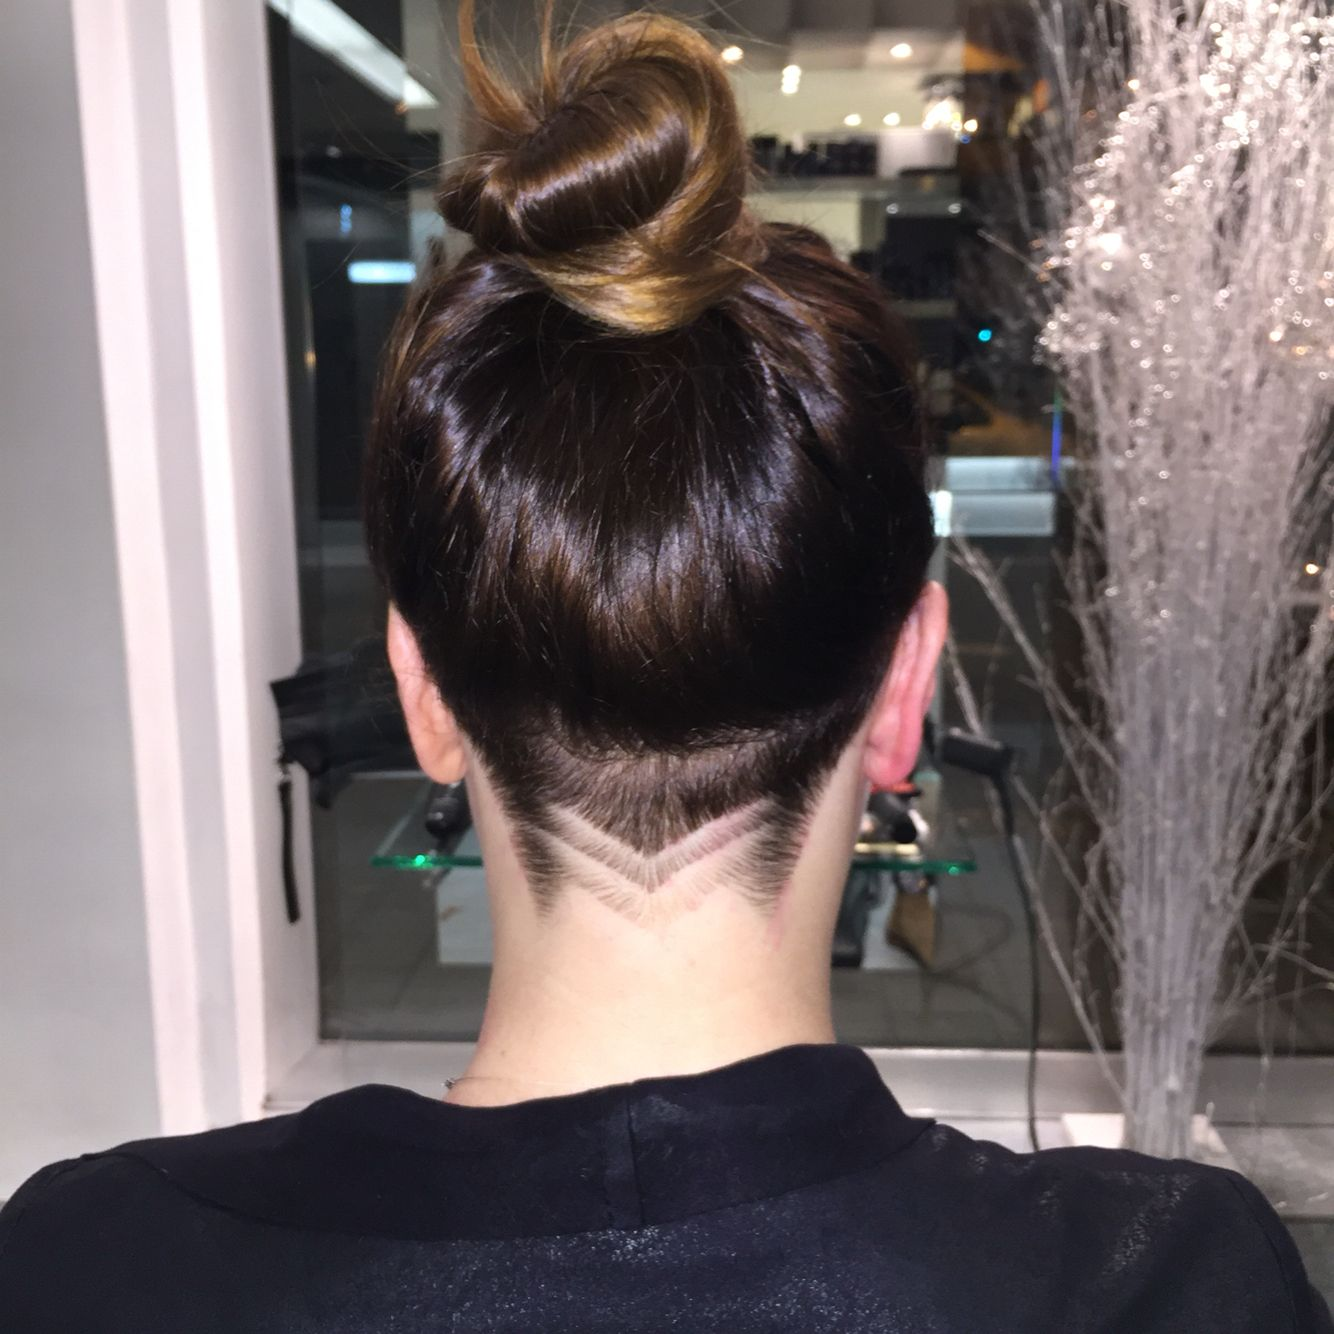 long hair with undercut and simple